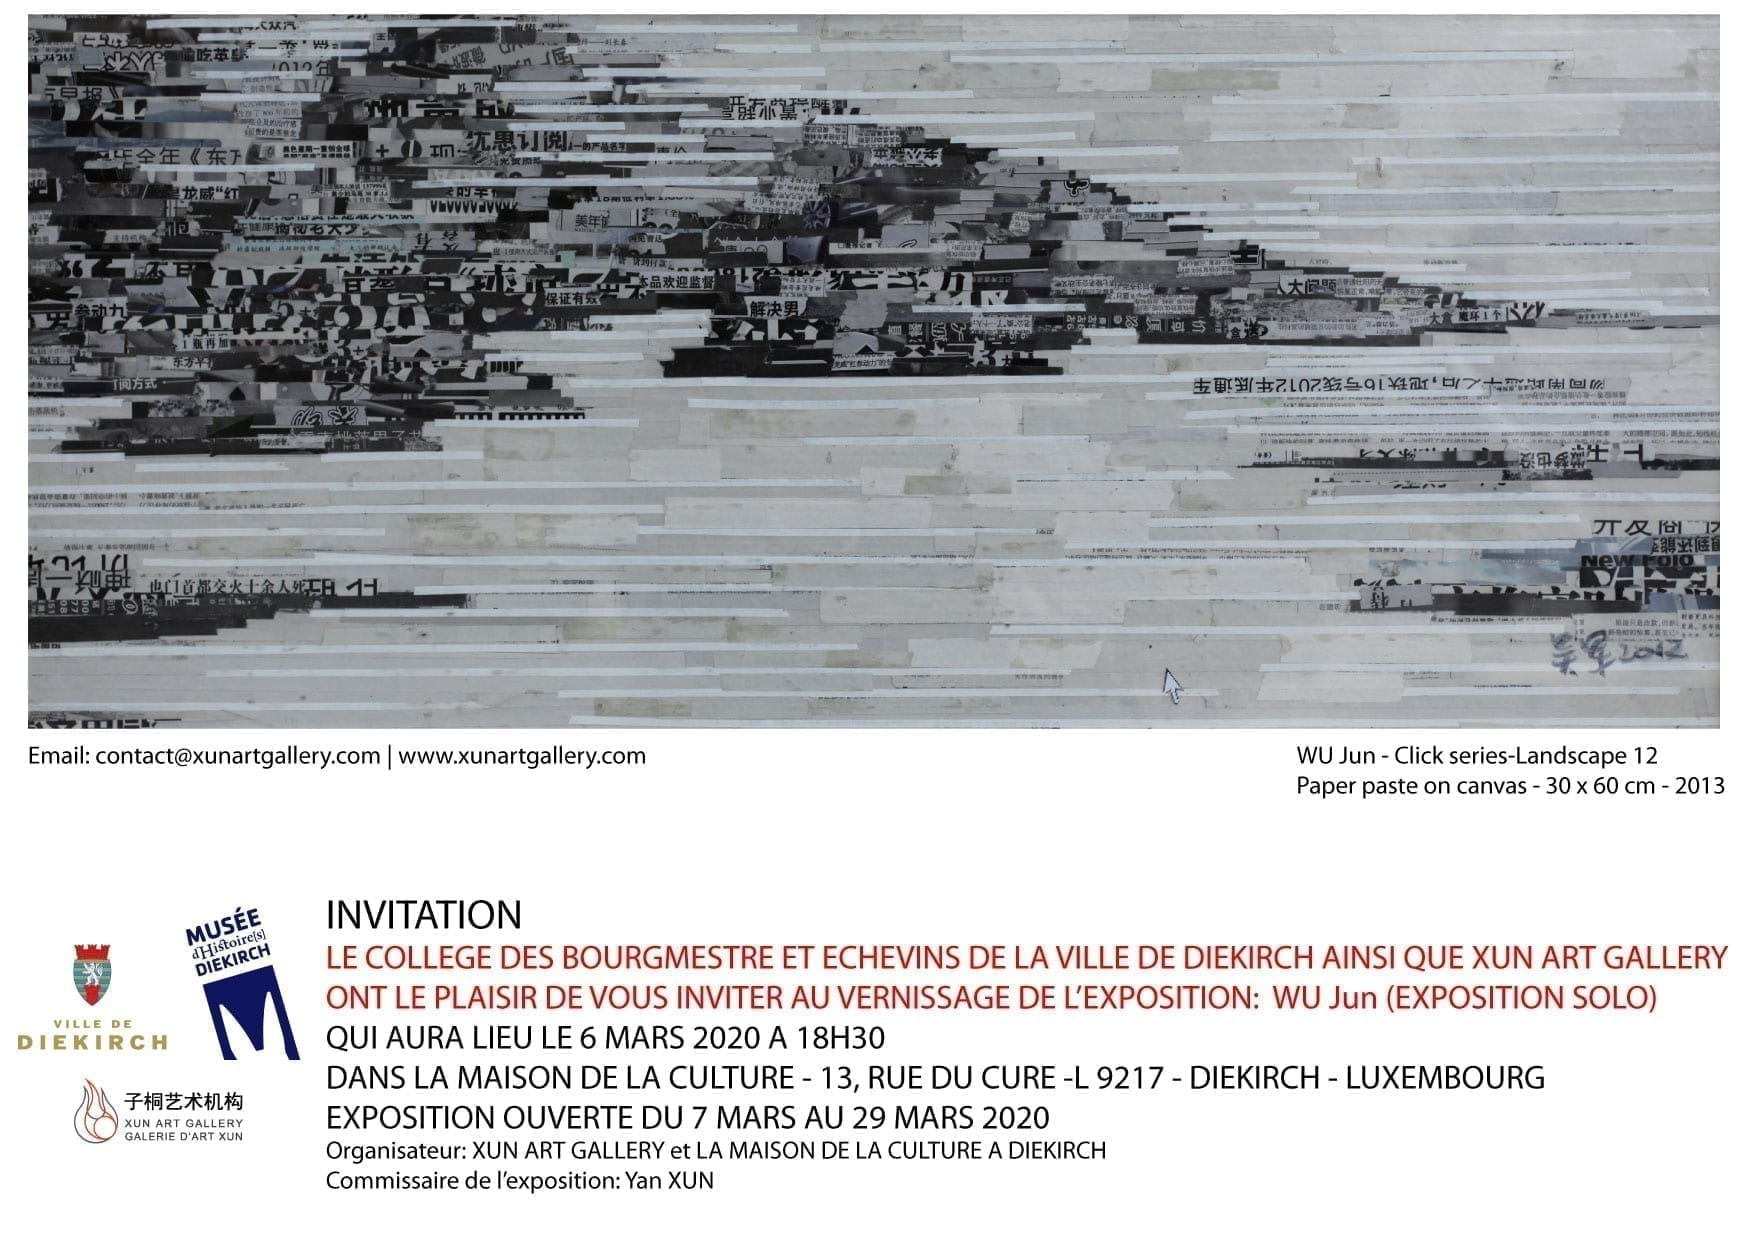 WU Jun's solo art exhibition in Luxembourg - March 6, 2020 to July 31, 2020